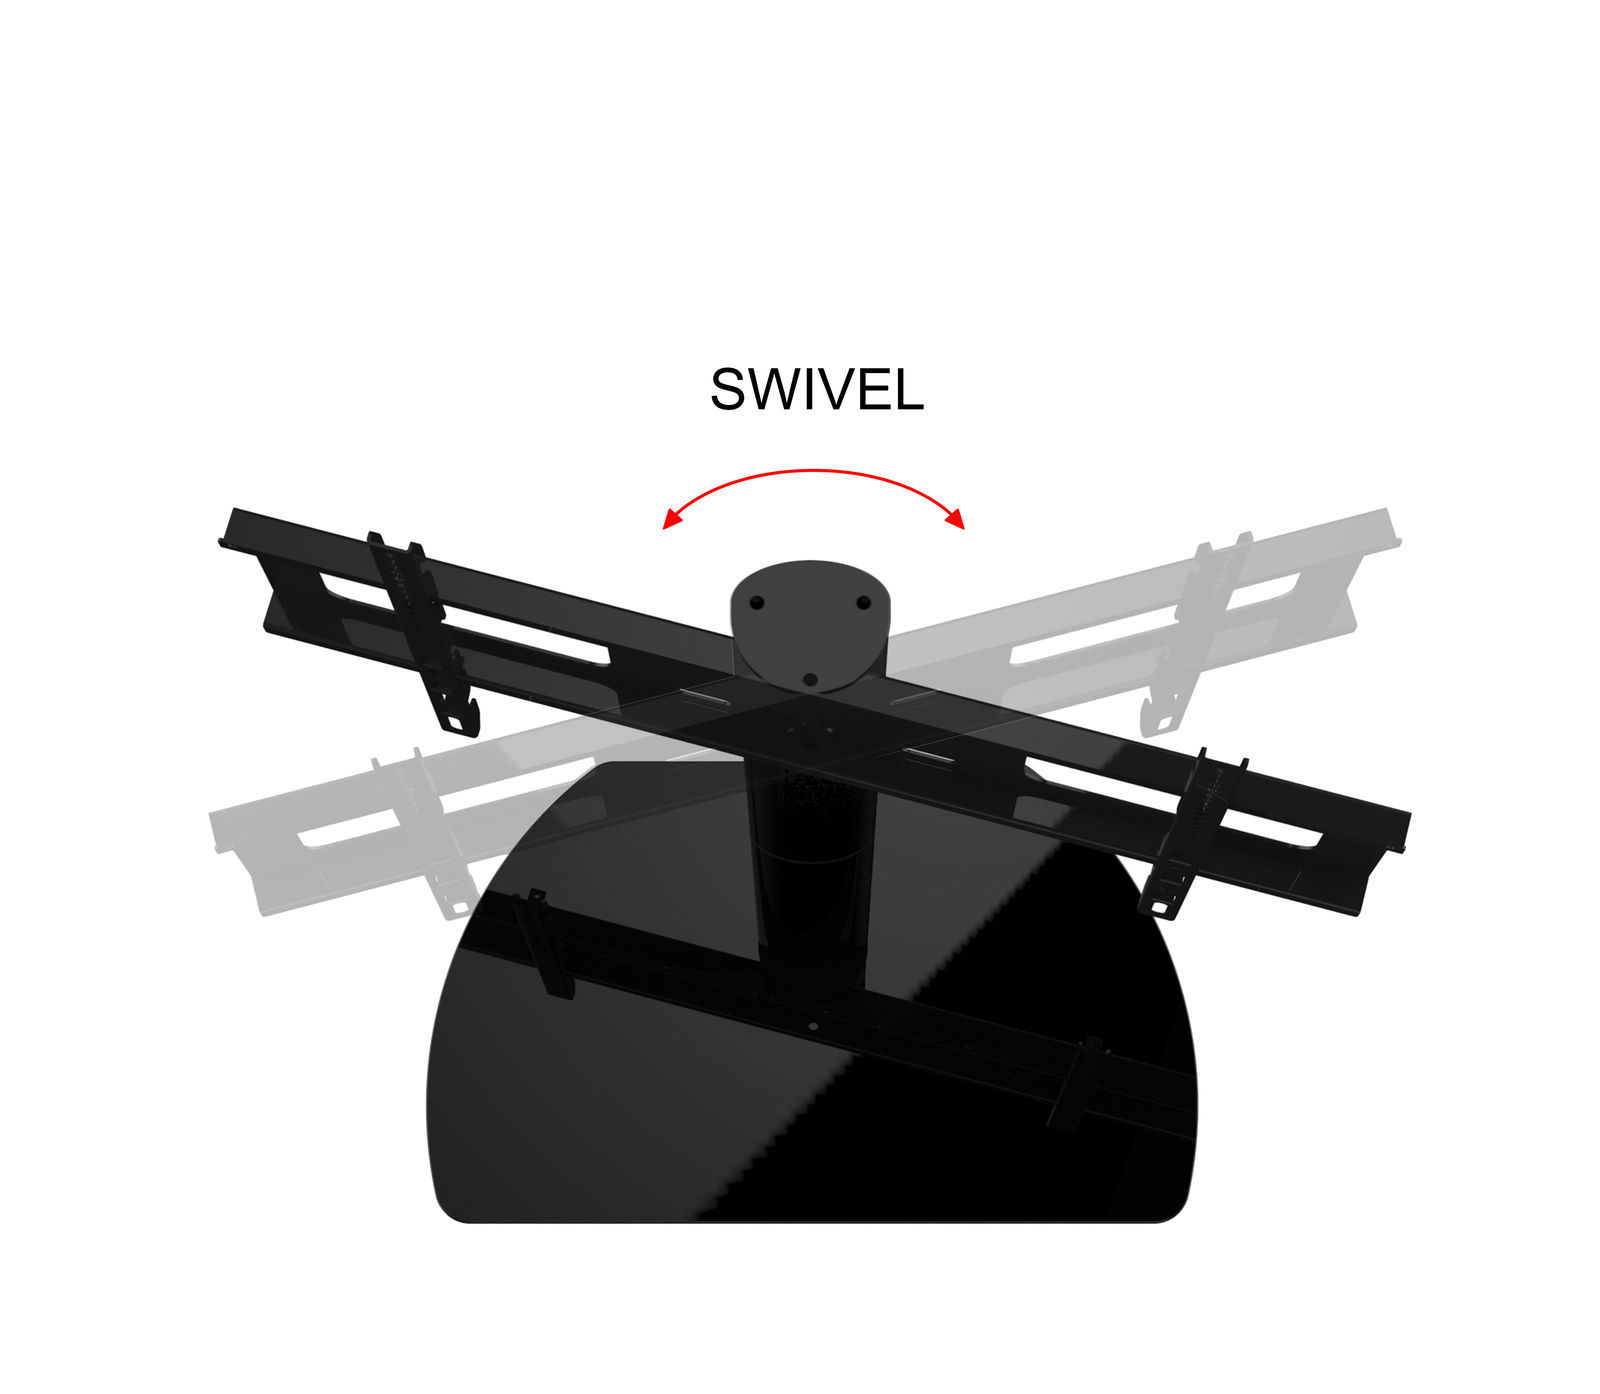 New Universal Replacement Swivel TV Stand/Base for Sony KDL-46EX500